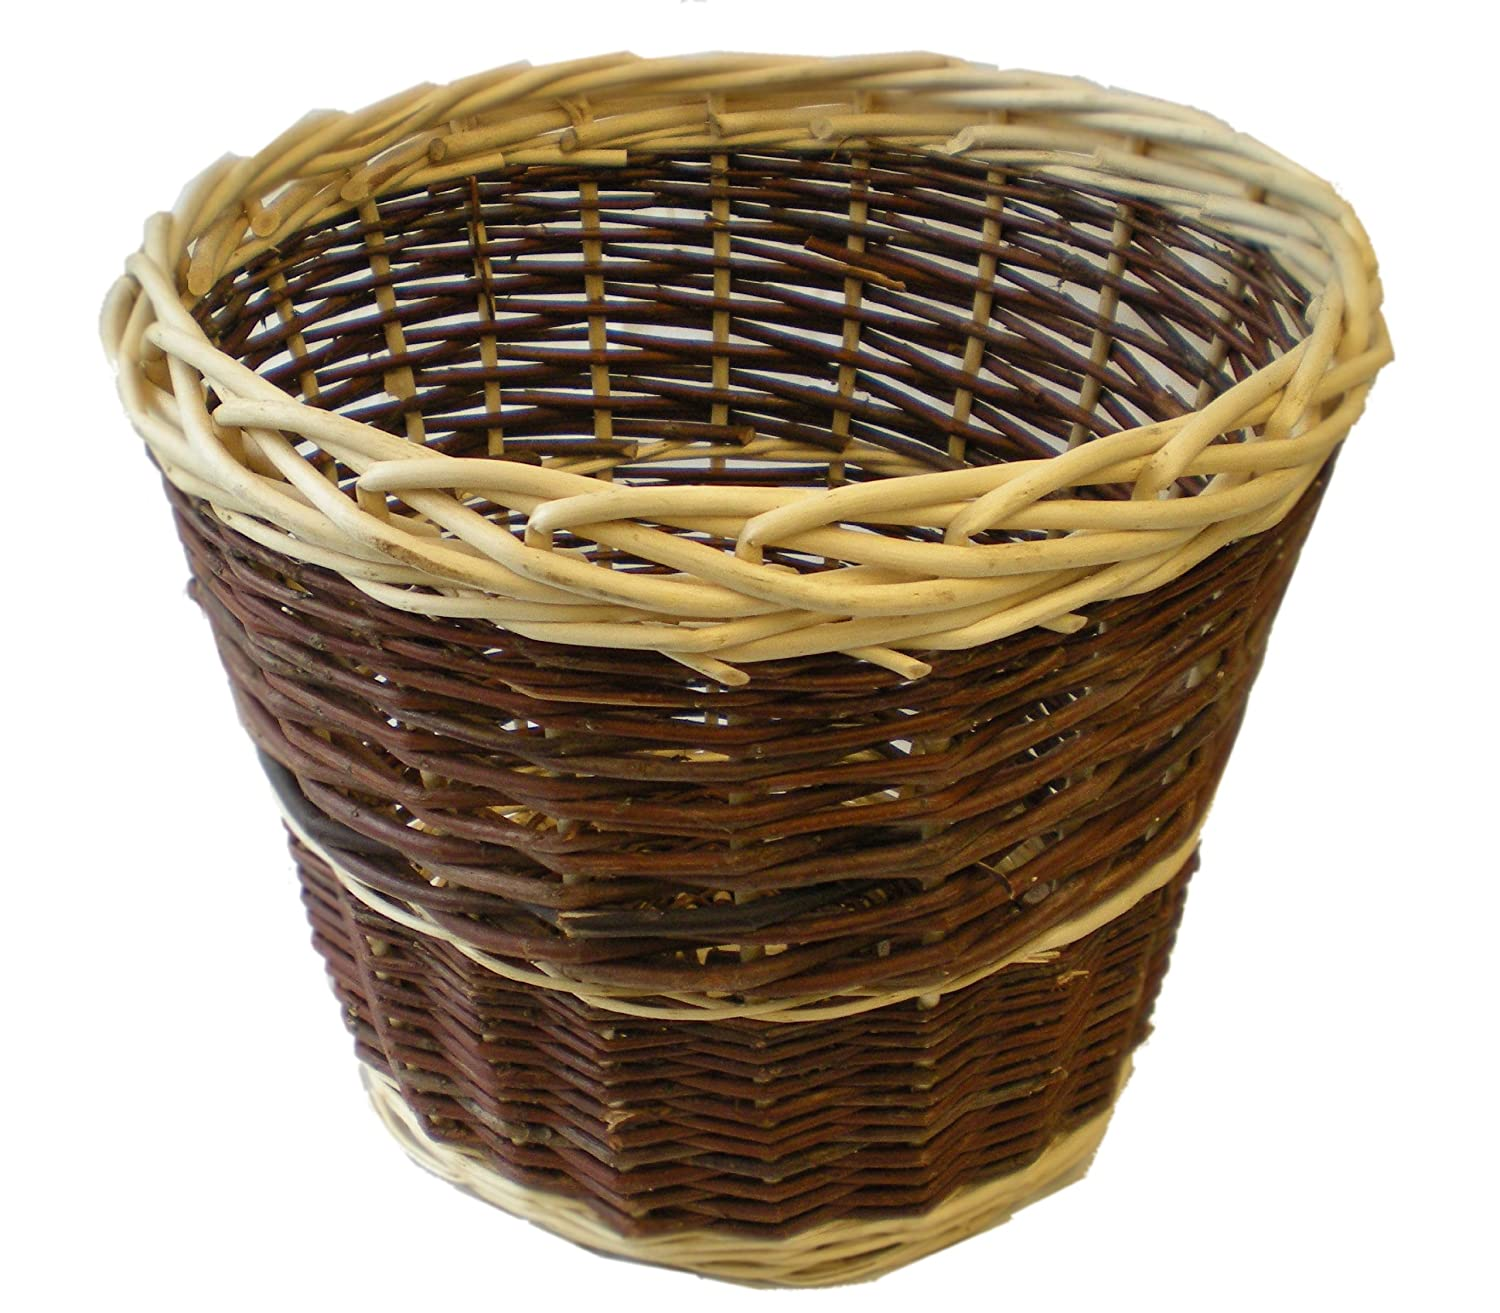 Round Wicker Wastepaper Basket - Smaller Size